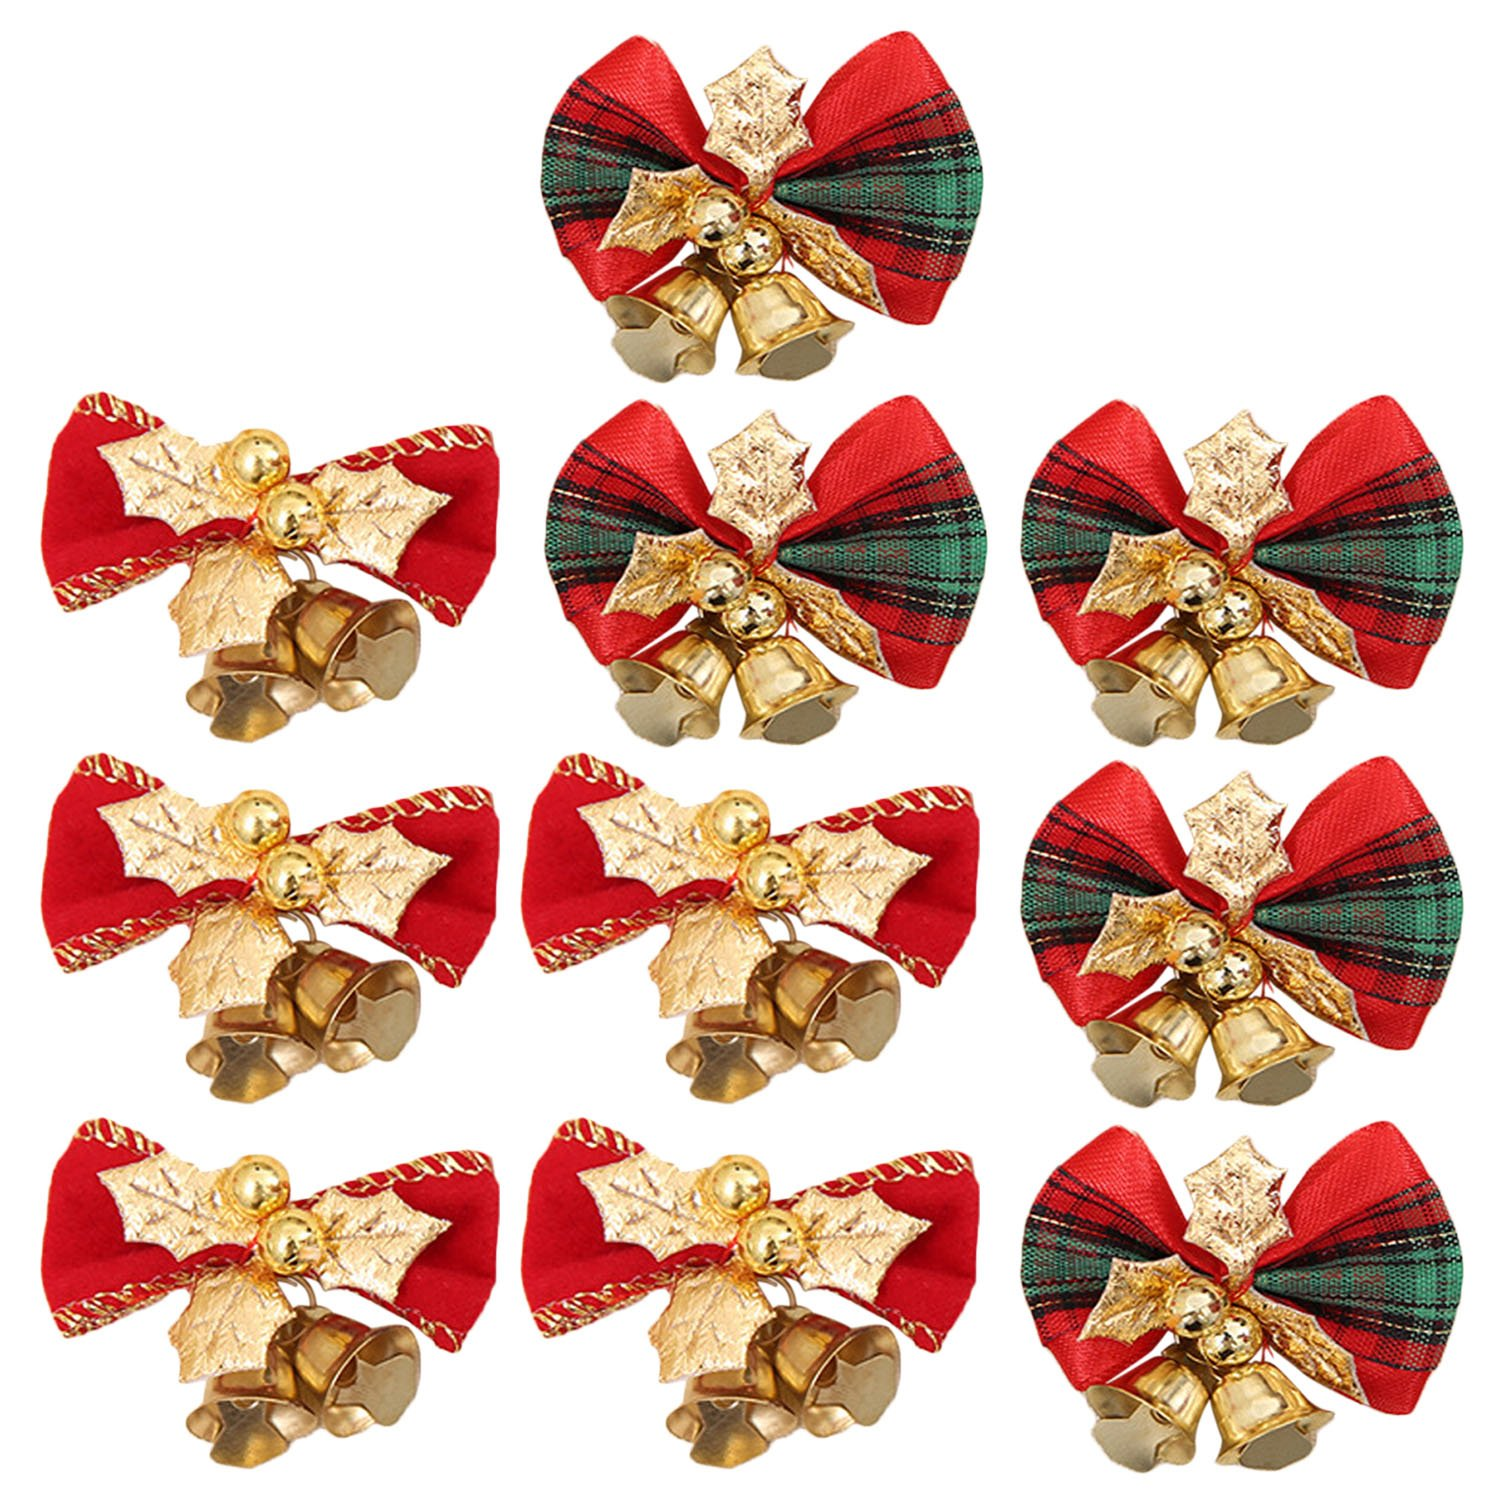 10 PCS Christmas Tree Bow Ornaments with Bell For Christmas Tree Wreaths Party Wedding Decorations Gift Packaging Gosear